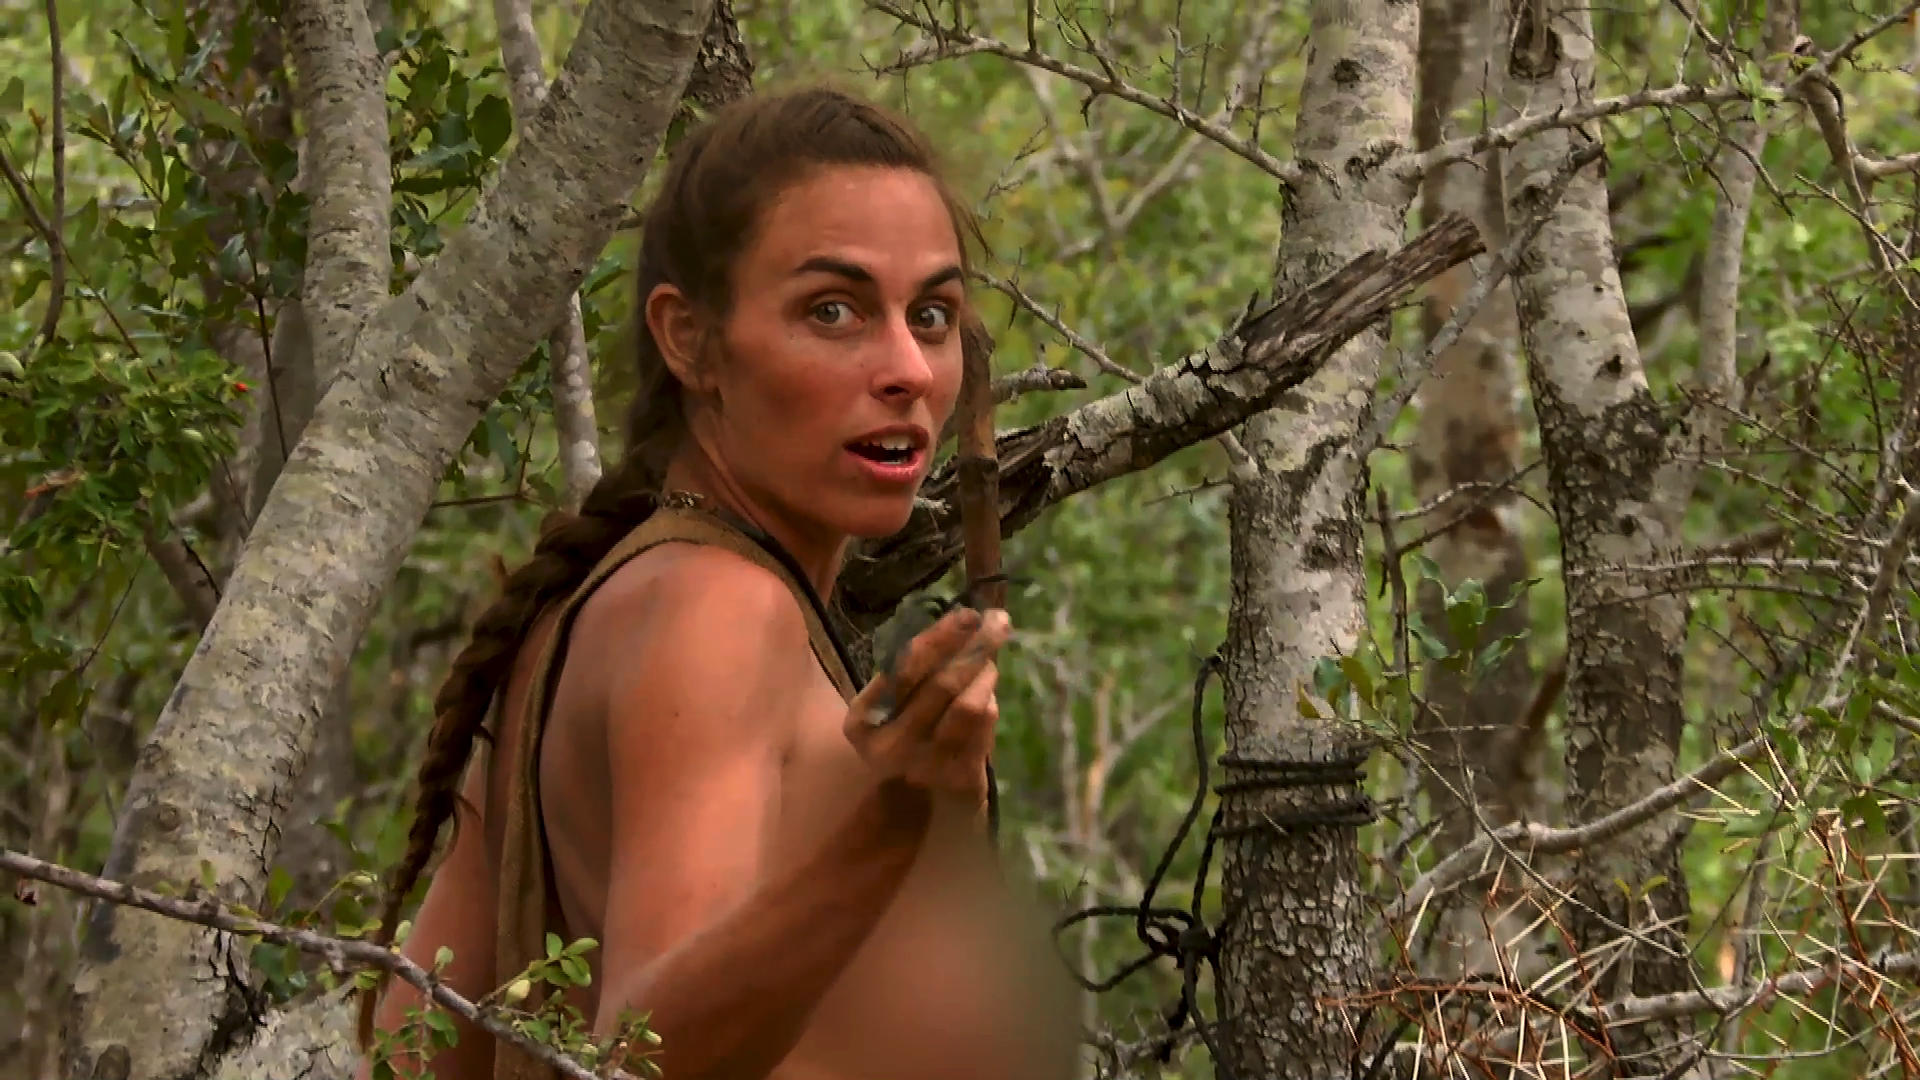 hot naked and afraid woman